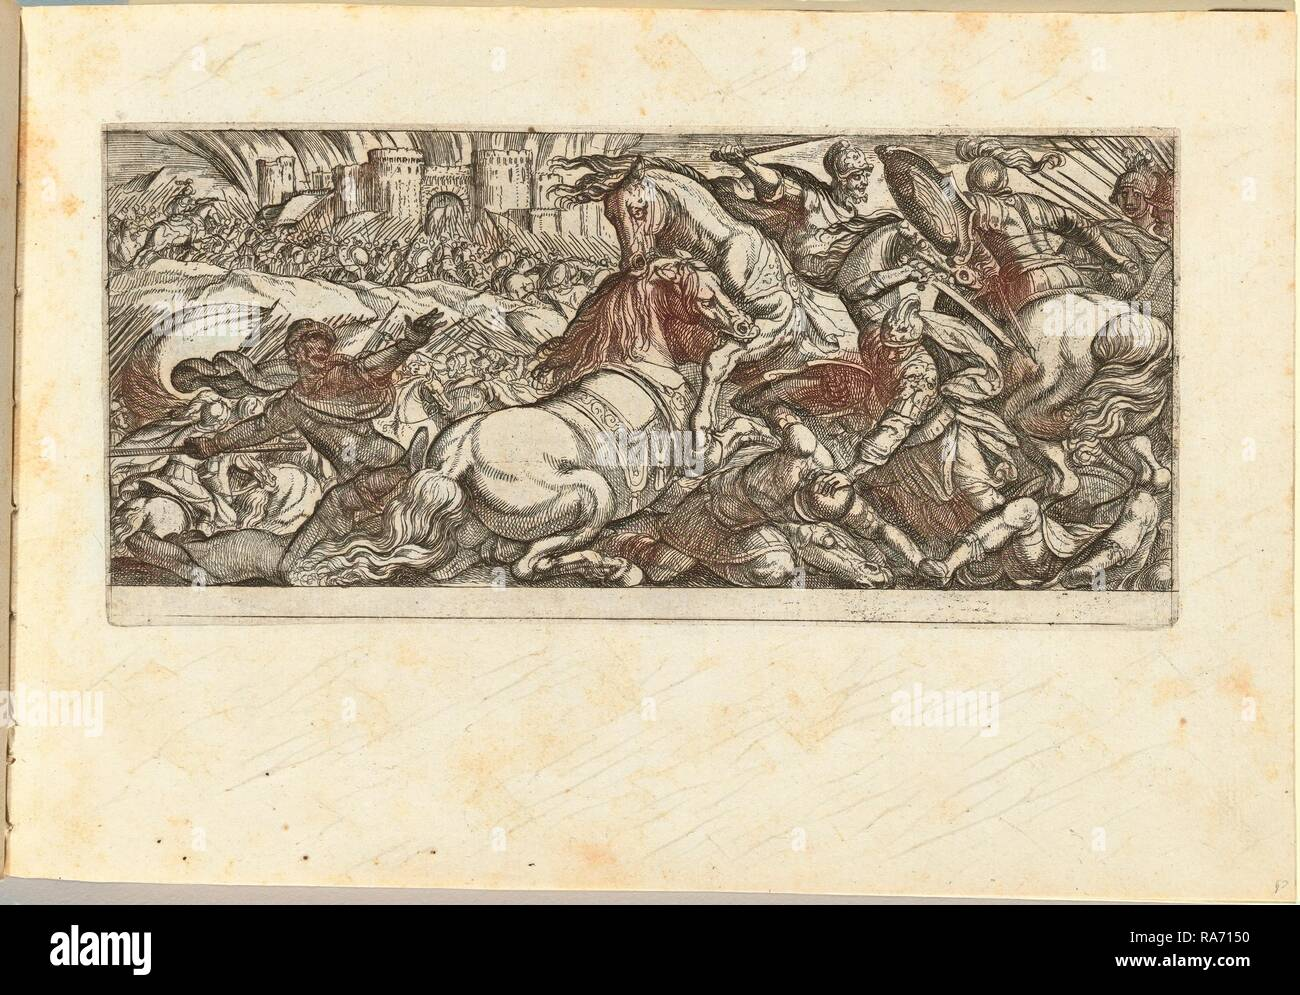 Antonio Tempesta, Italian (1555-1630), Battle Scene with Two Horses Attacking Each Other, etching. Reimagined - Stock Image